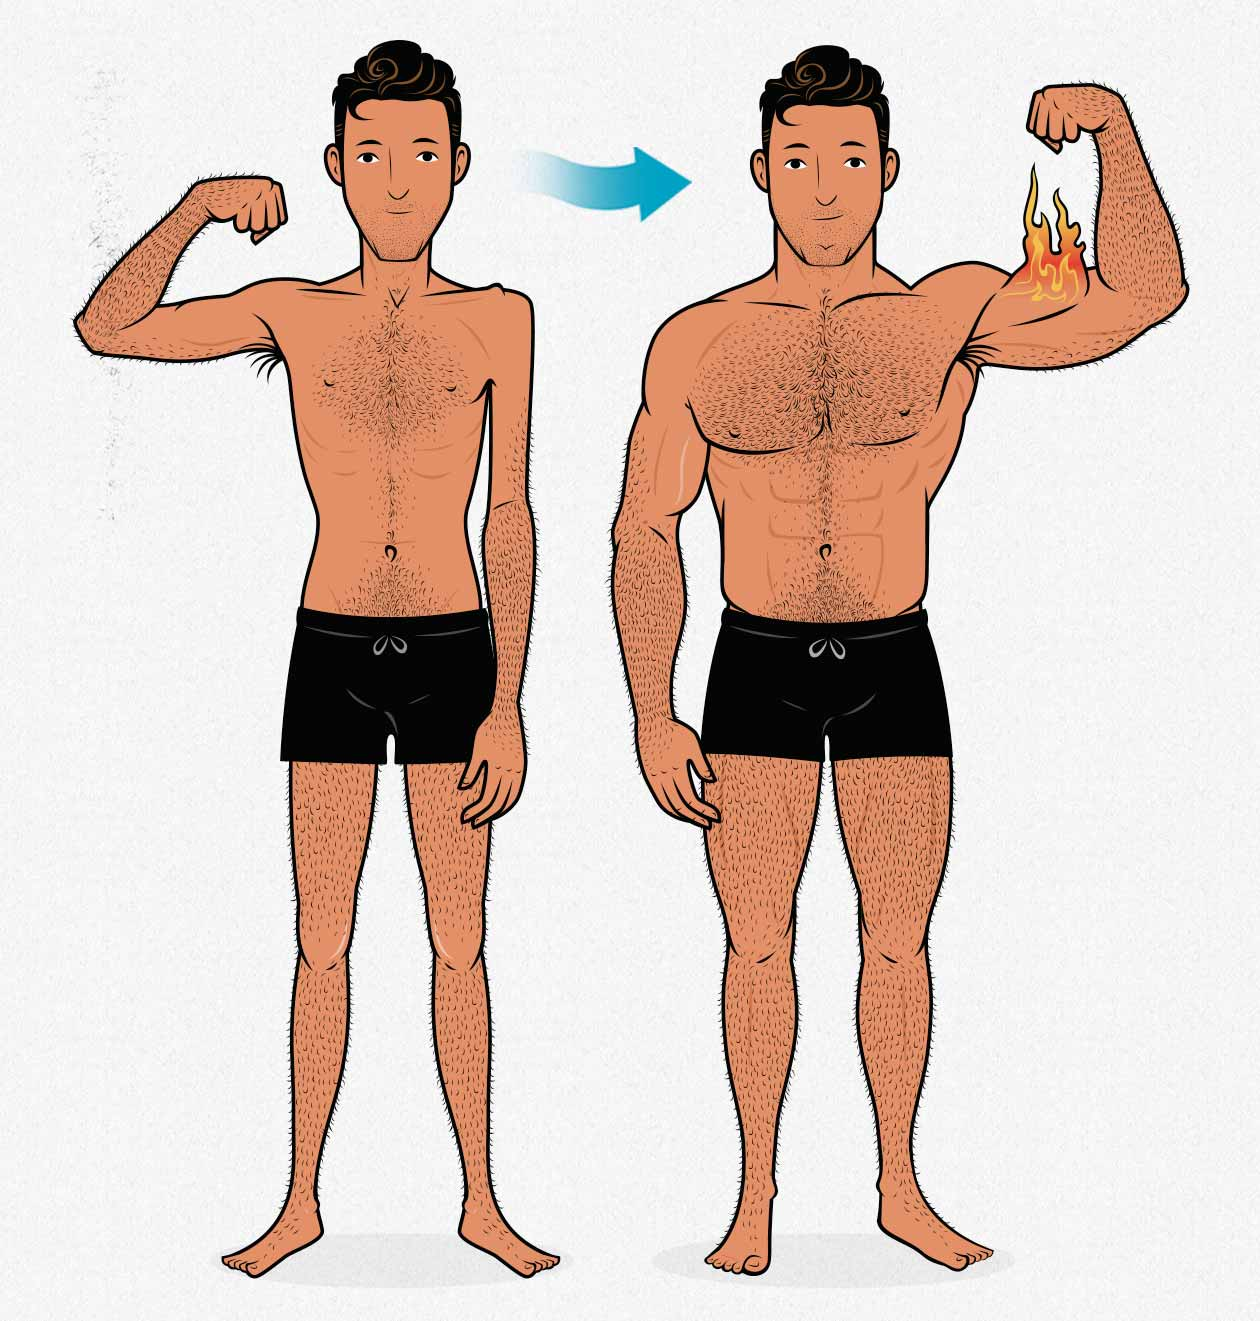 Bony to Beastly illustration showing a skinny guy bulking up and becoming muscular.